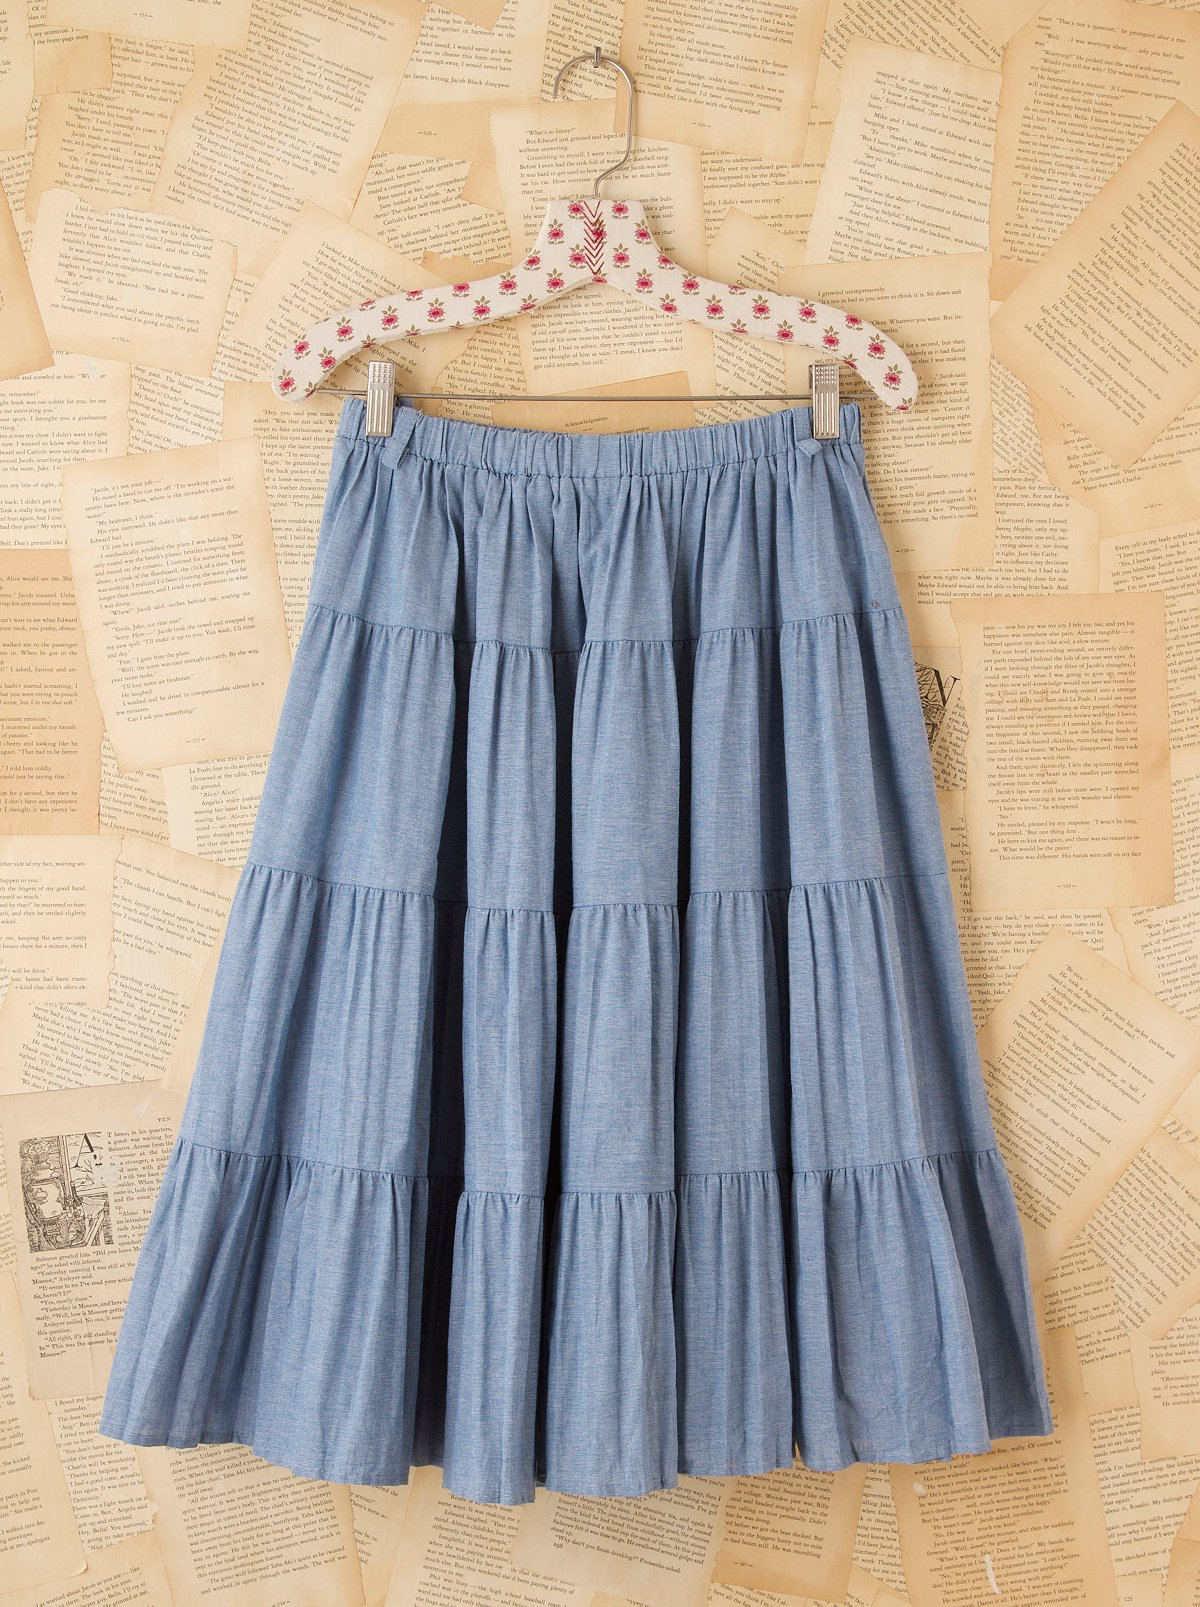 Vintage Tiered Chambray Skirt